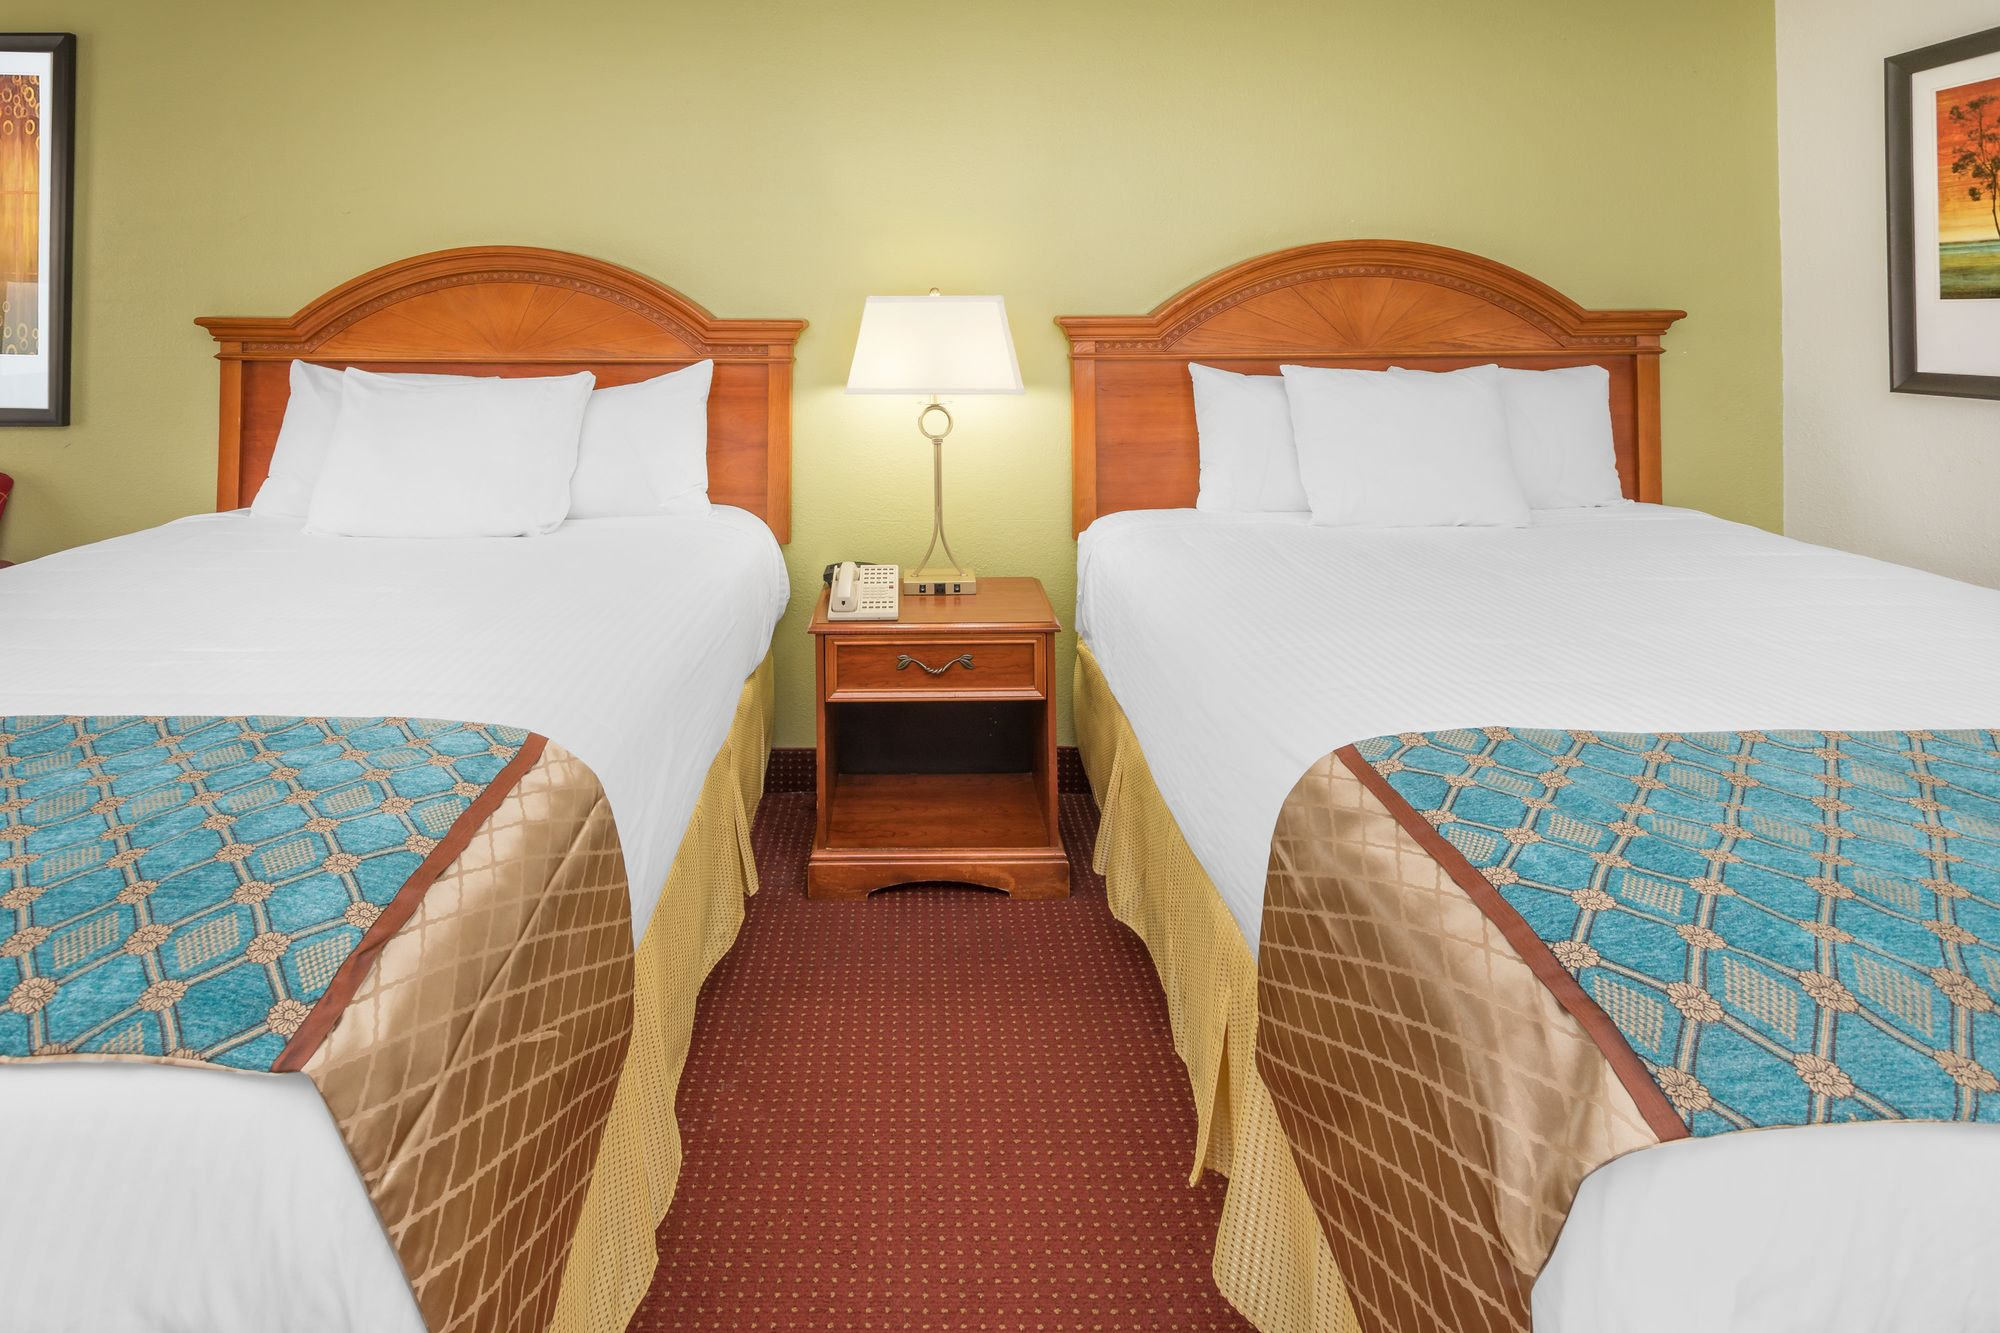 Baymont Inn & Suites Orangeburg North in Orangeburg, SC